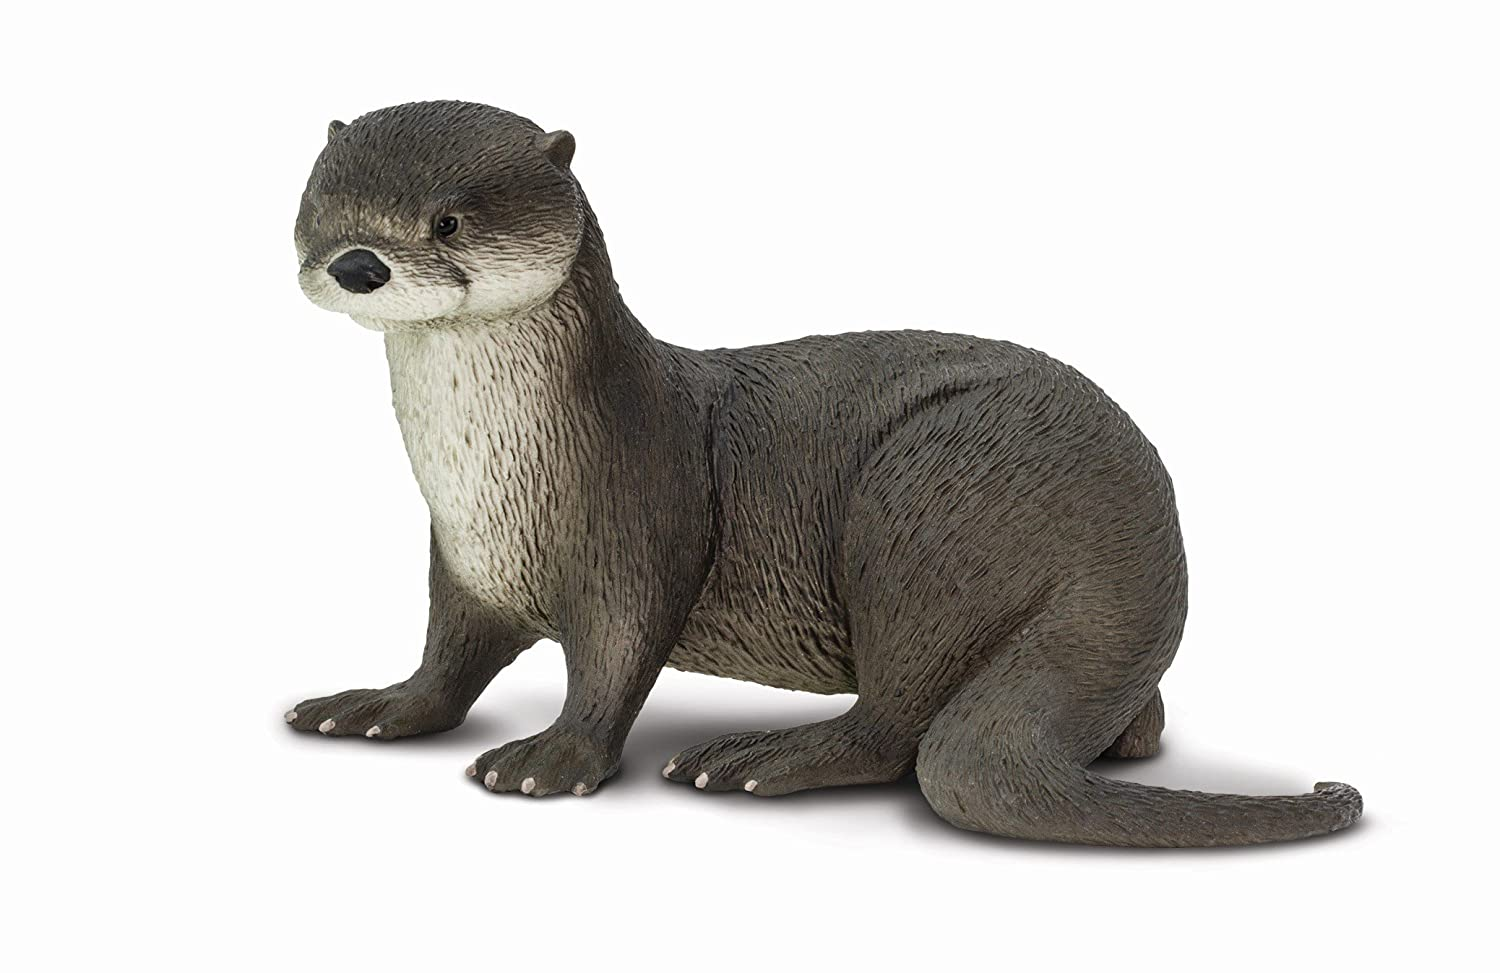 Safari Ltd. River Otter - Realistic Hand Painted Toy Figurine Model - Quality Construction from Phthalate, Lead and BPA Free Materials - For Ages 3 and Up